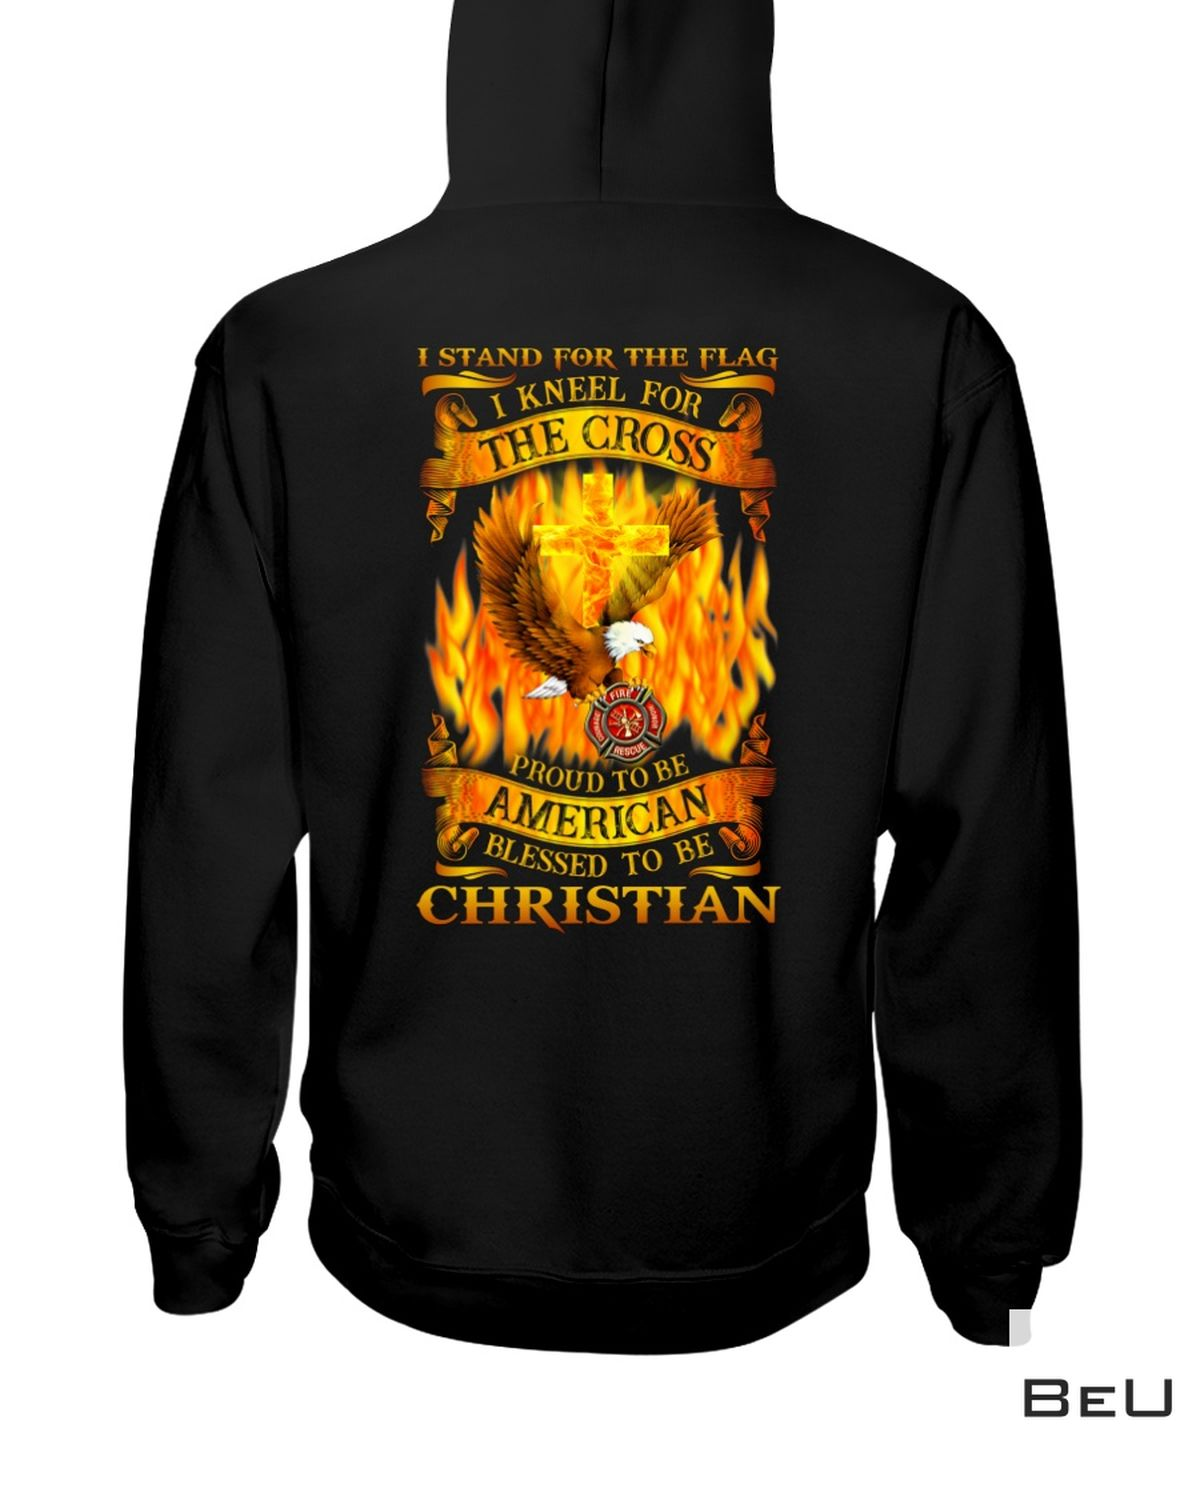 I Stand For The Flag And Kneel For The Cross Firefighter Shirt c